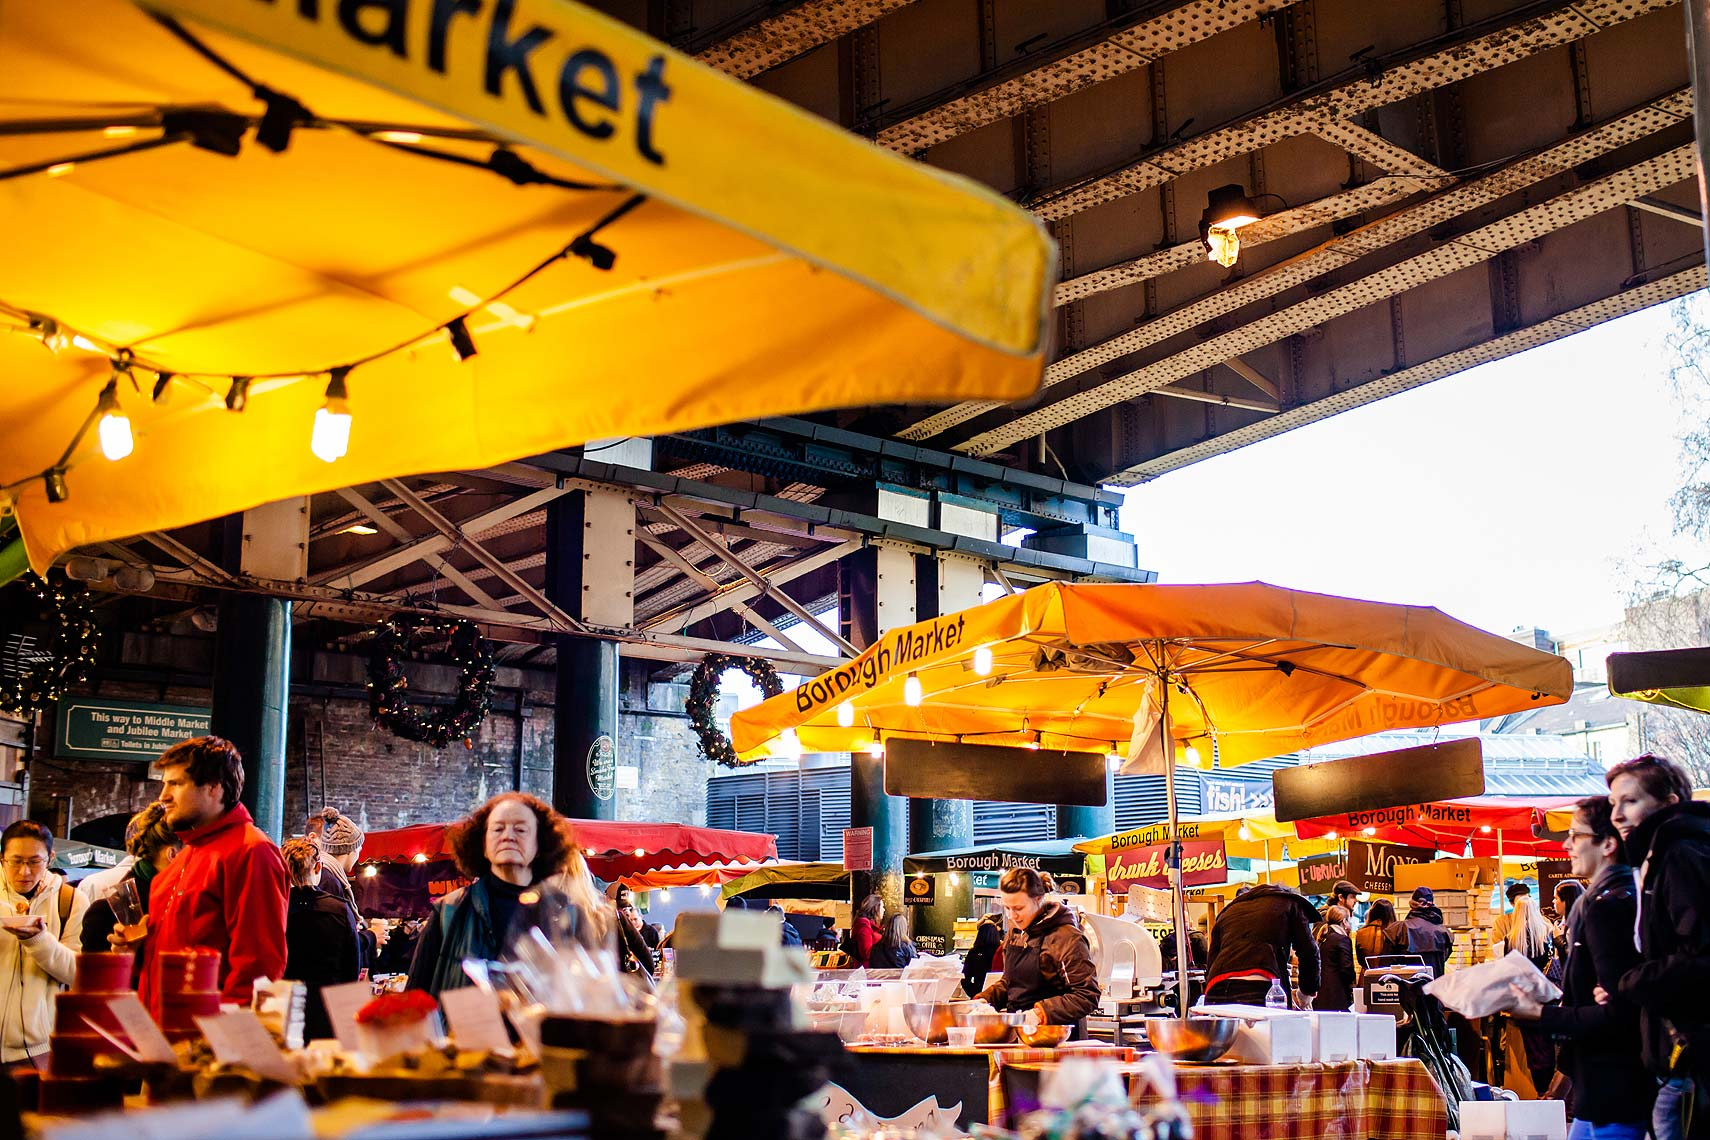 london1_borough-market.jpg